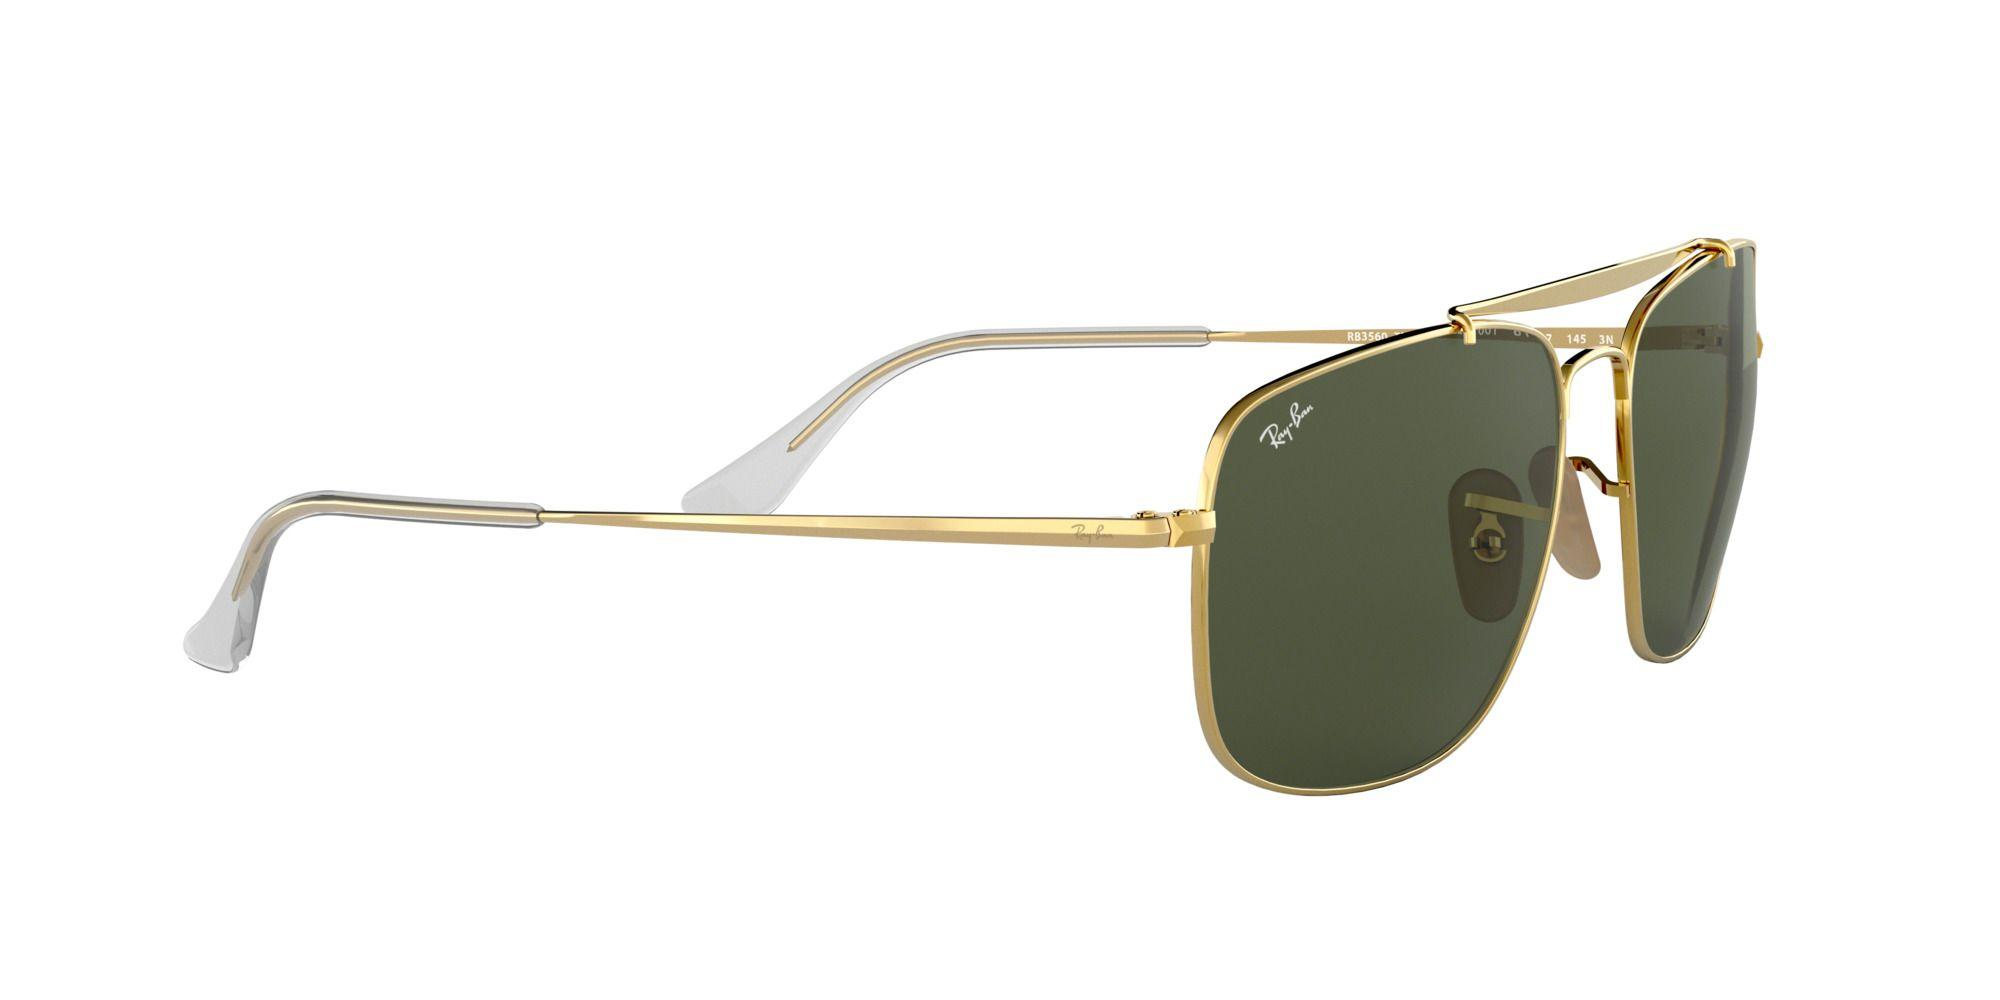 Ray-Ban Gold The Colonel Rb3560 Square Sunglasses in Metallic